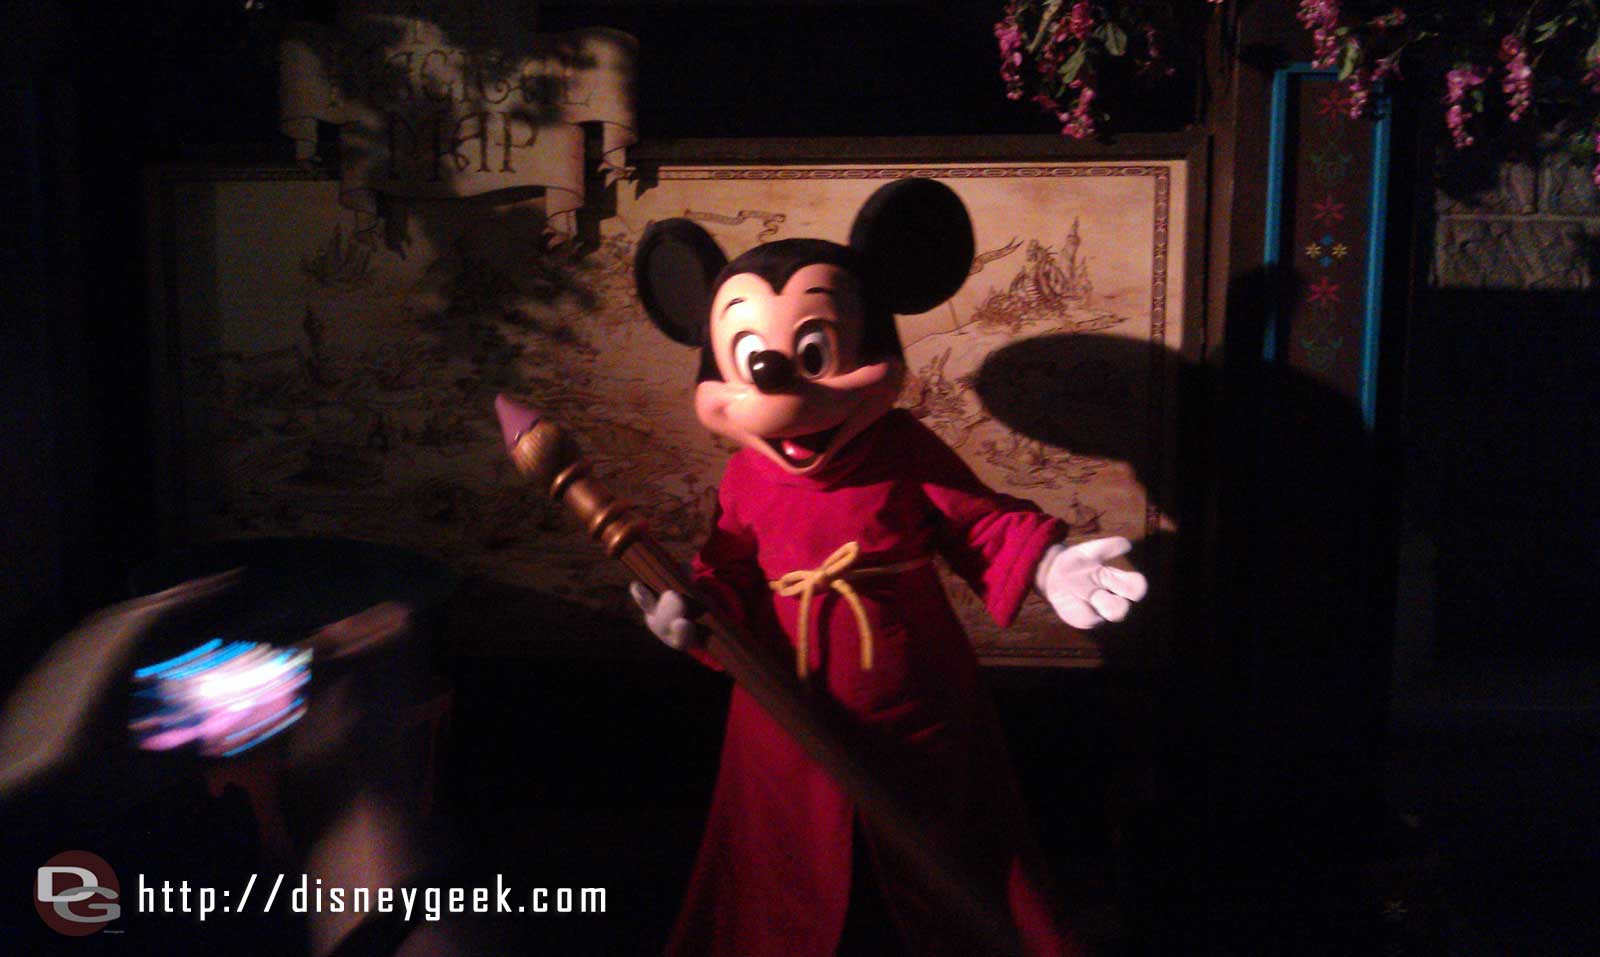 Mickey celebrating after the Premiere of his new show #JustGotHappier